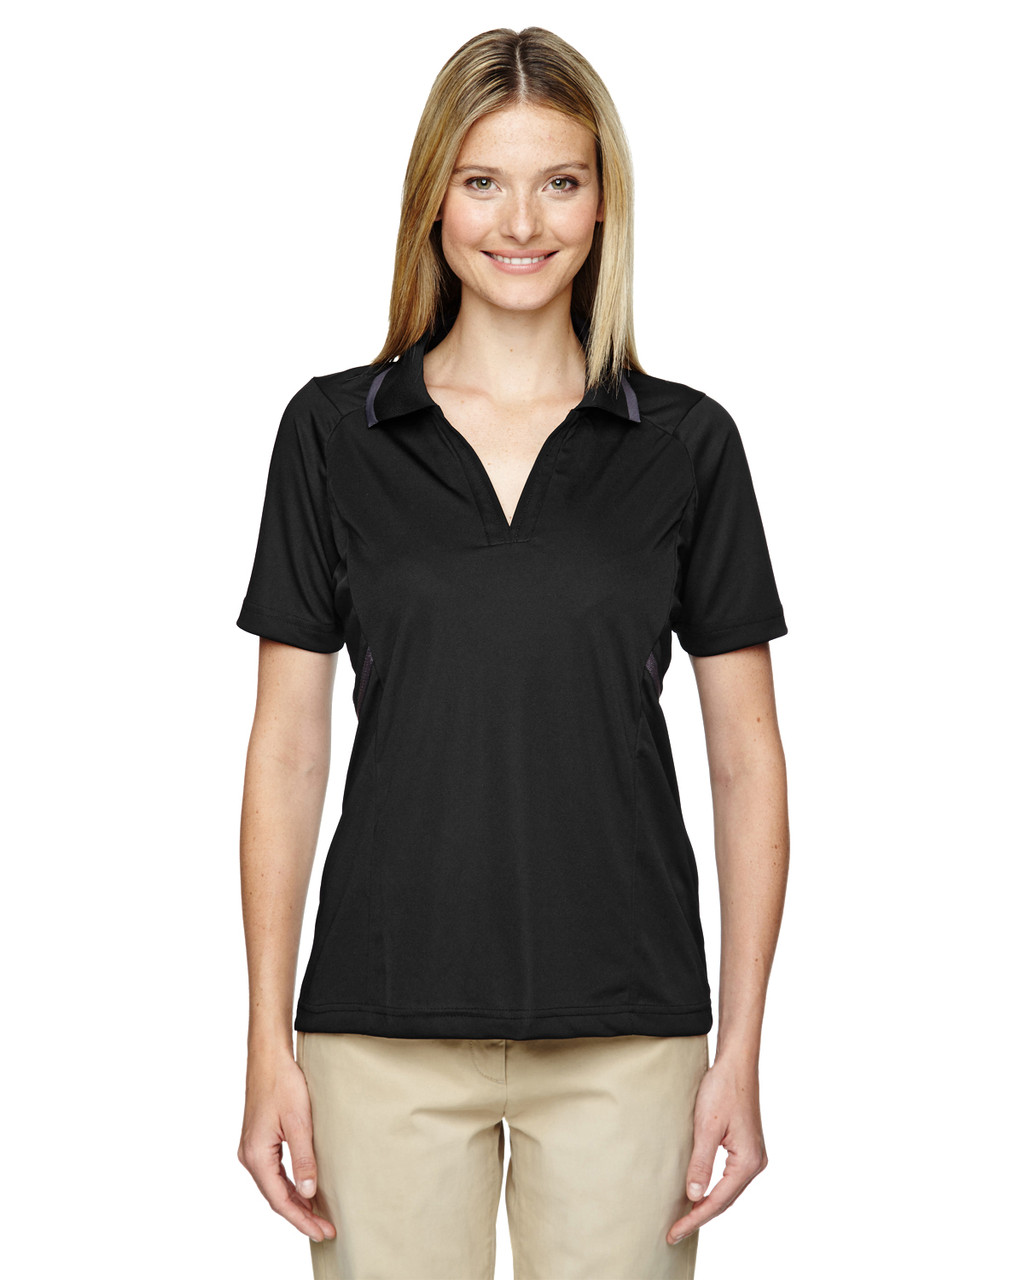 Black- 75118 Ash City - Extreme Eperformance Propel Interlock Polo Shirt with Contrast Tape   BlankClothing.ca